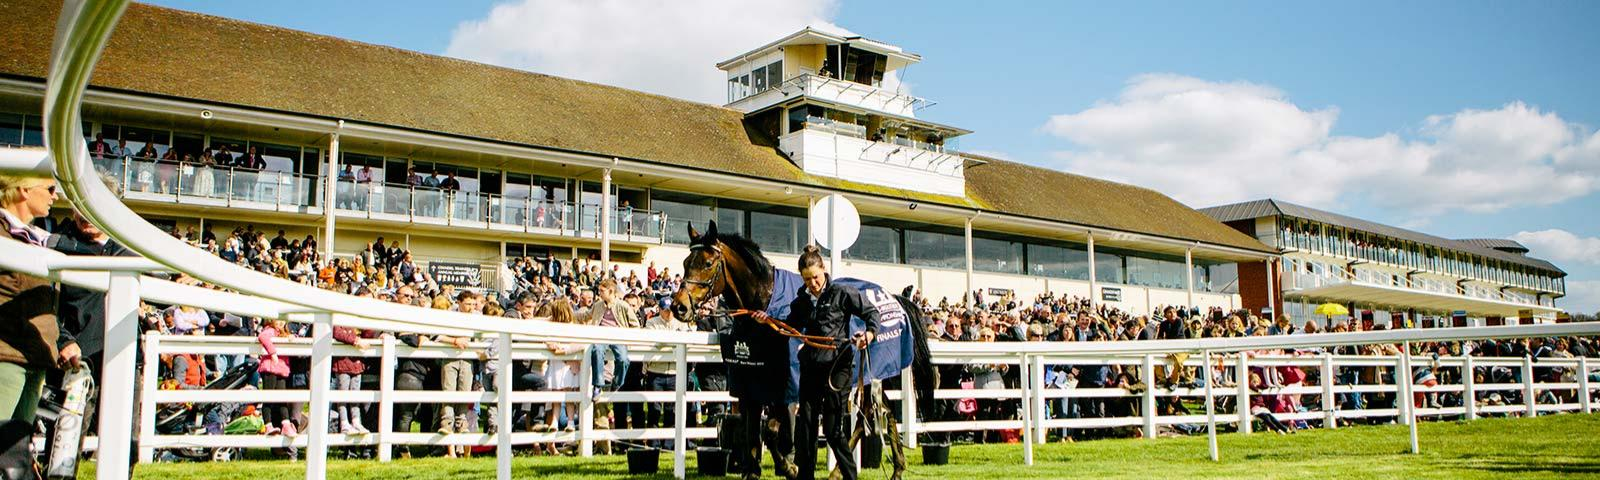 Horse being led through parade ring with crowds watching in the background.